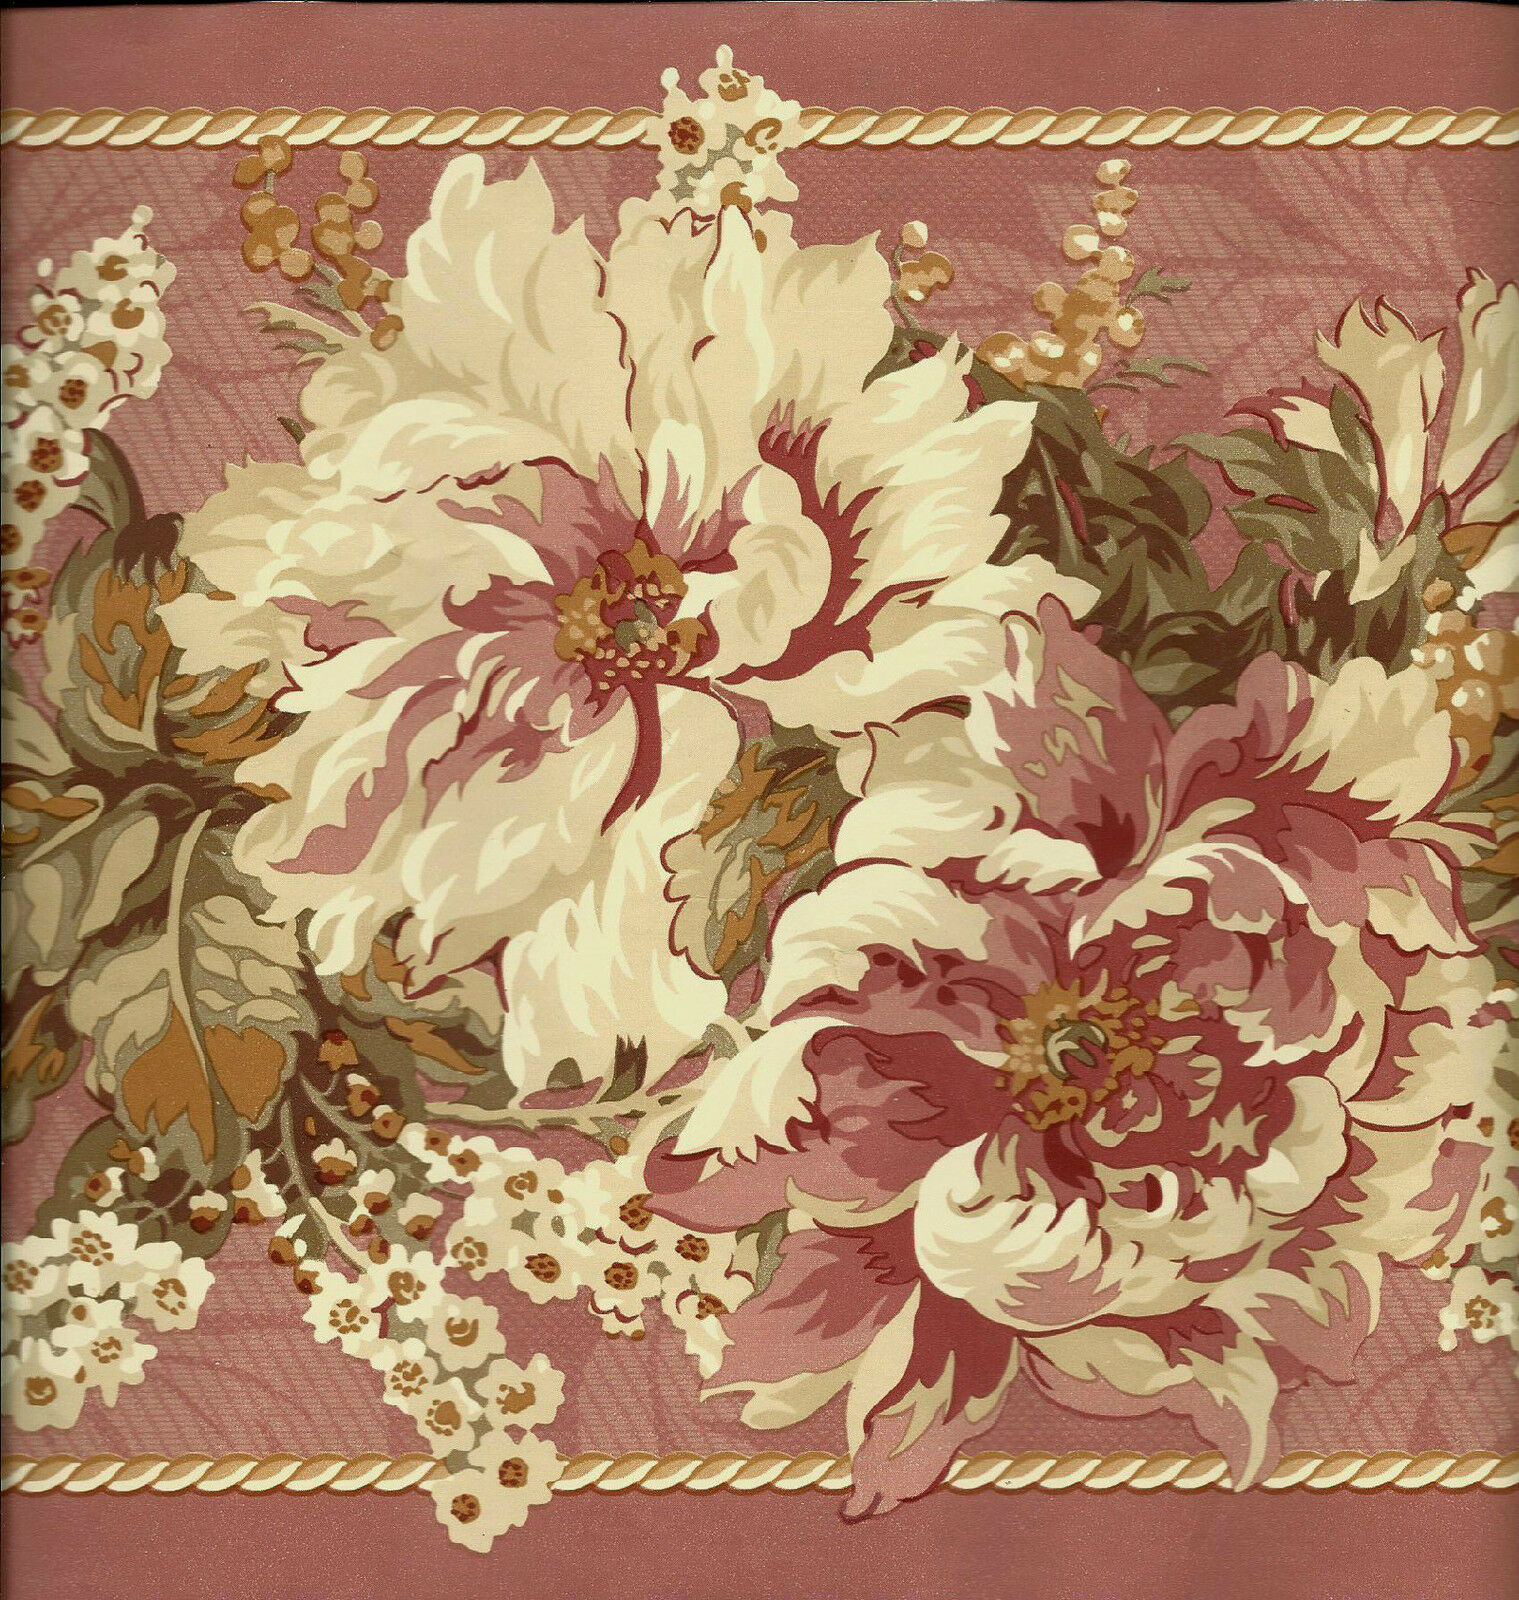 Victorian Dusty Rose Floral Wallpaper Border For Sale Online